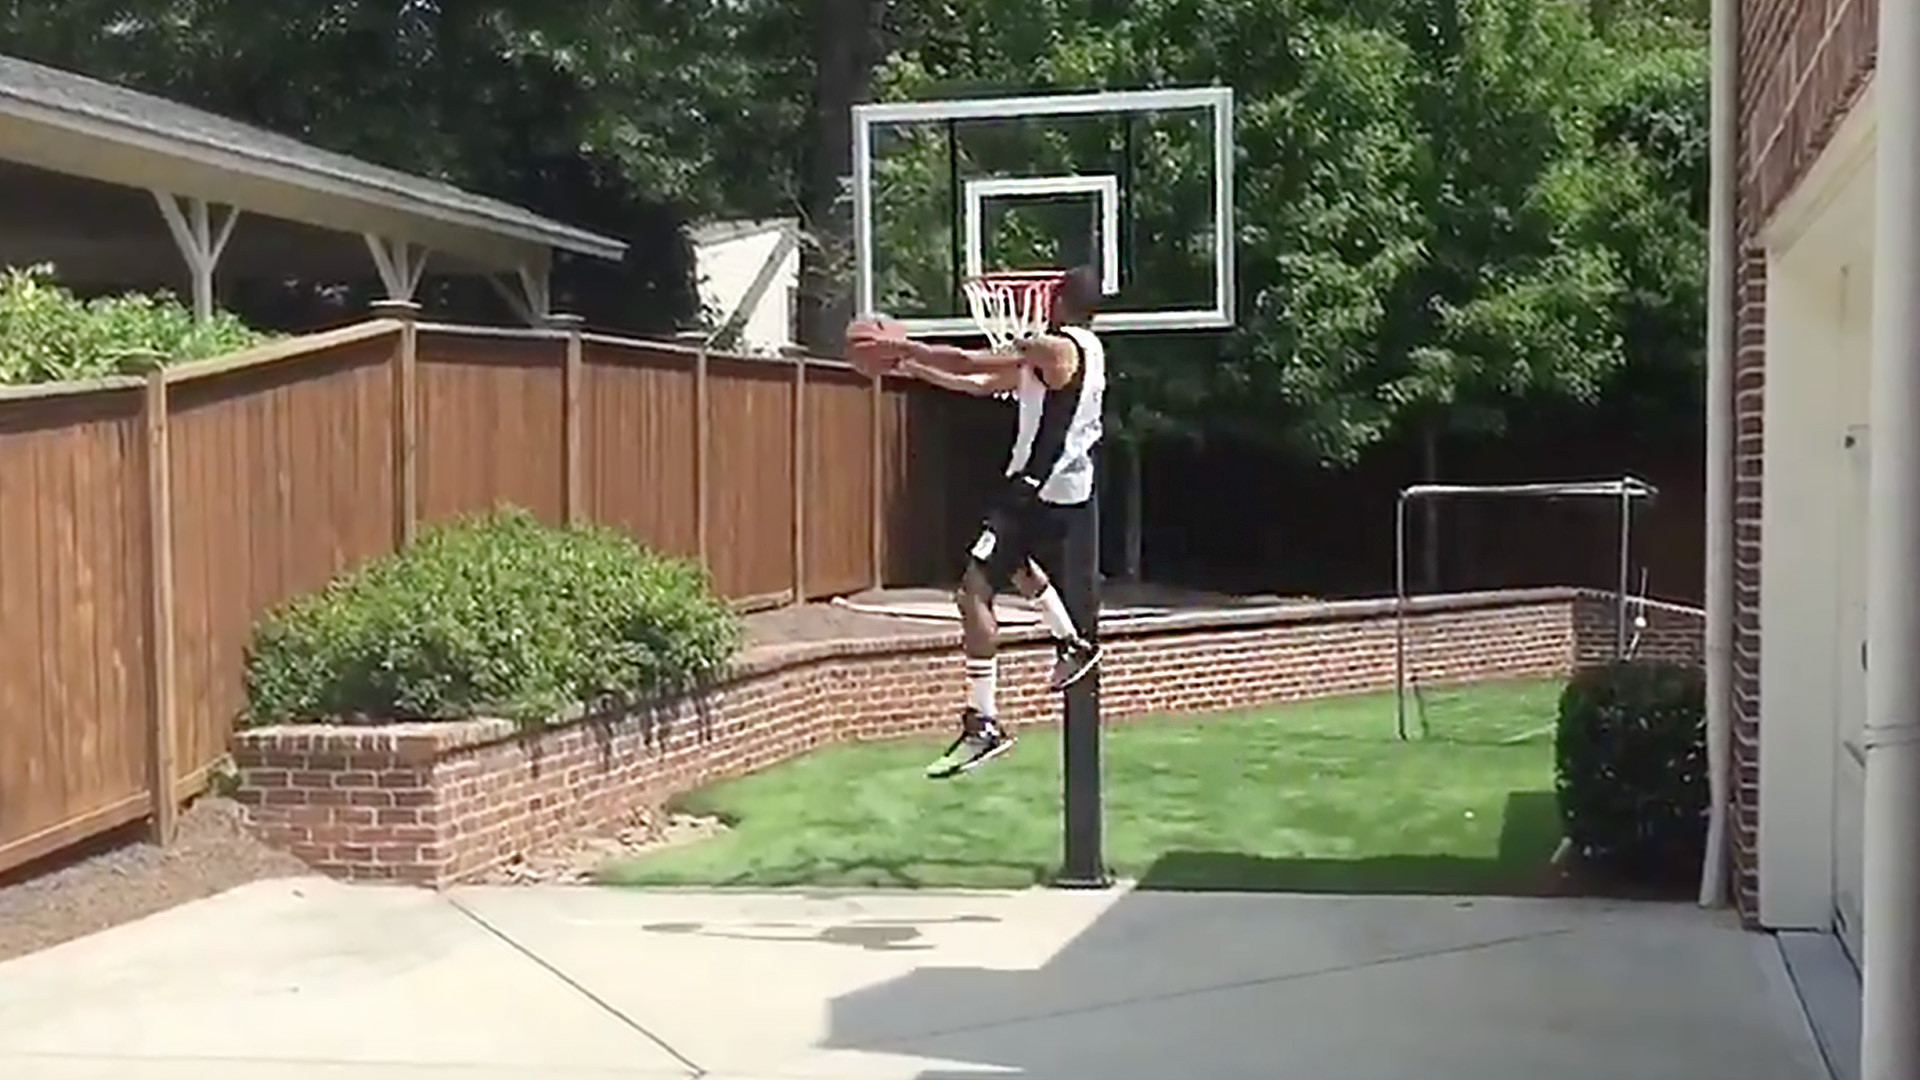 nba impersonator rips dunk champ zach lavine la times